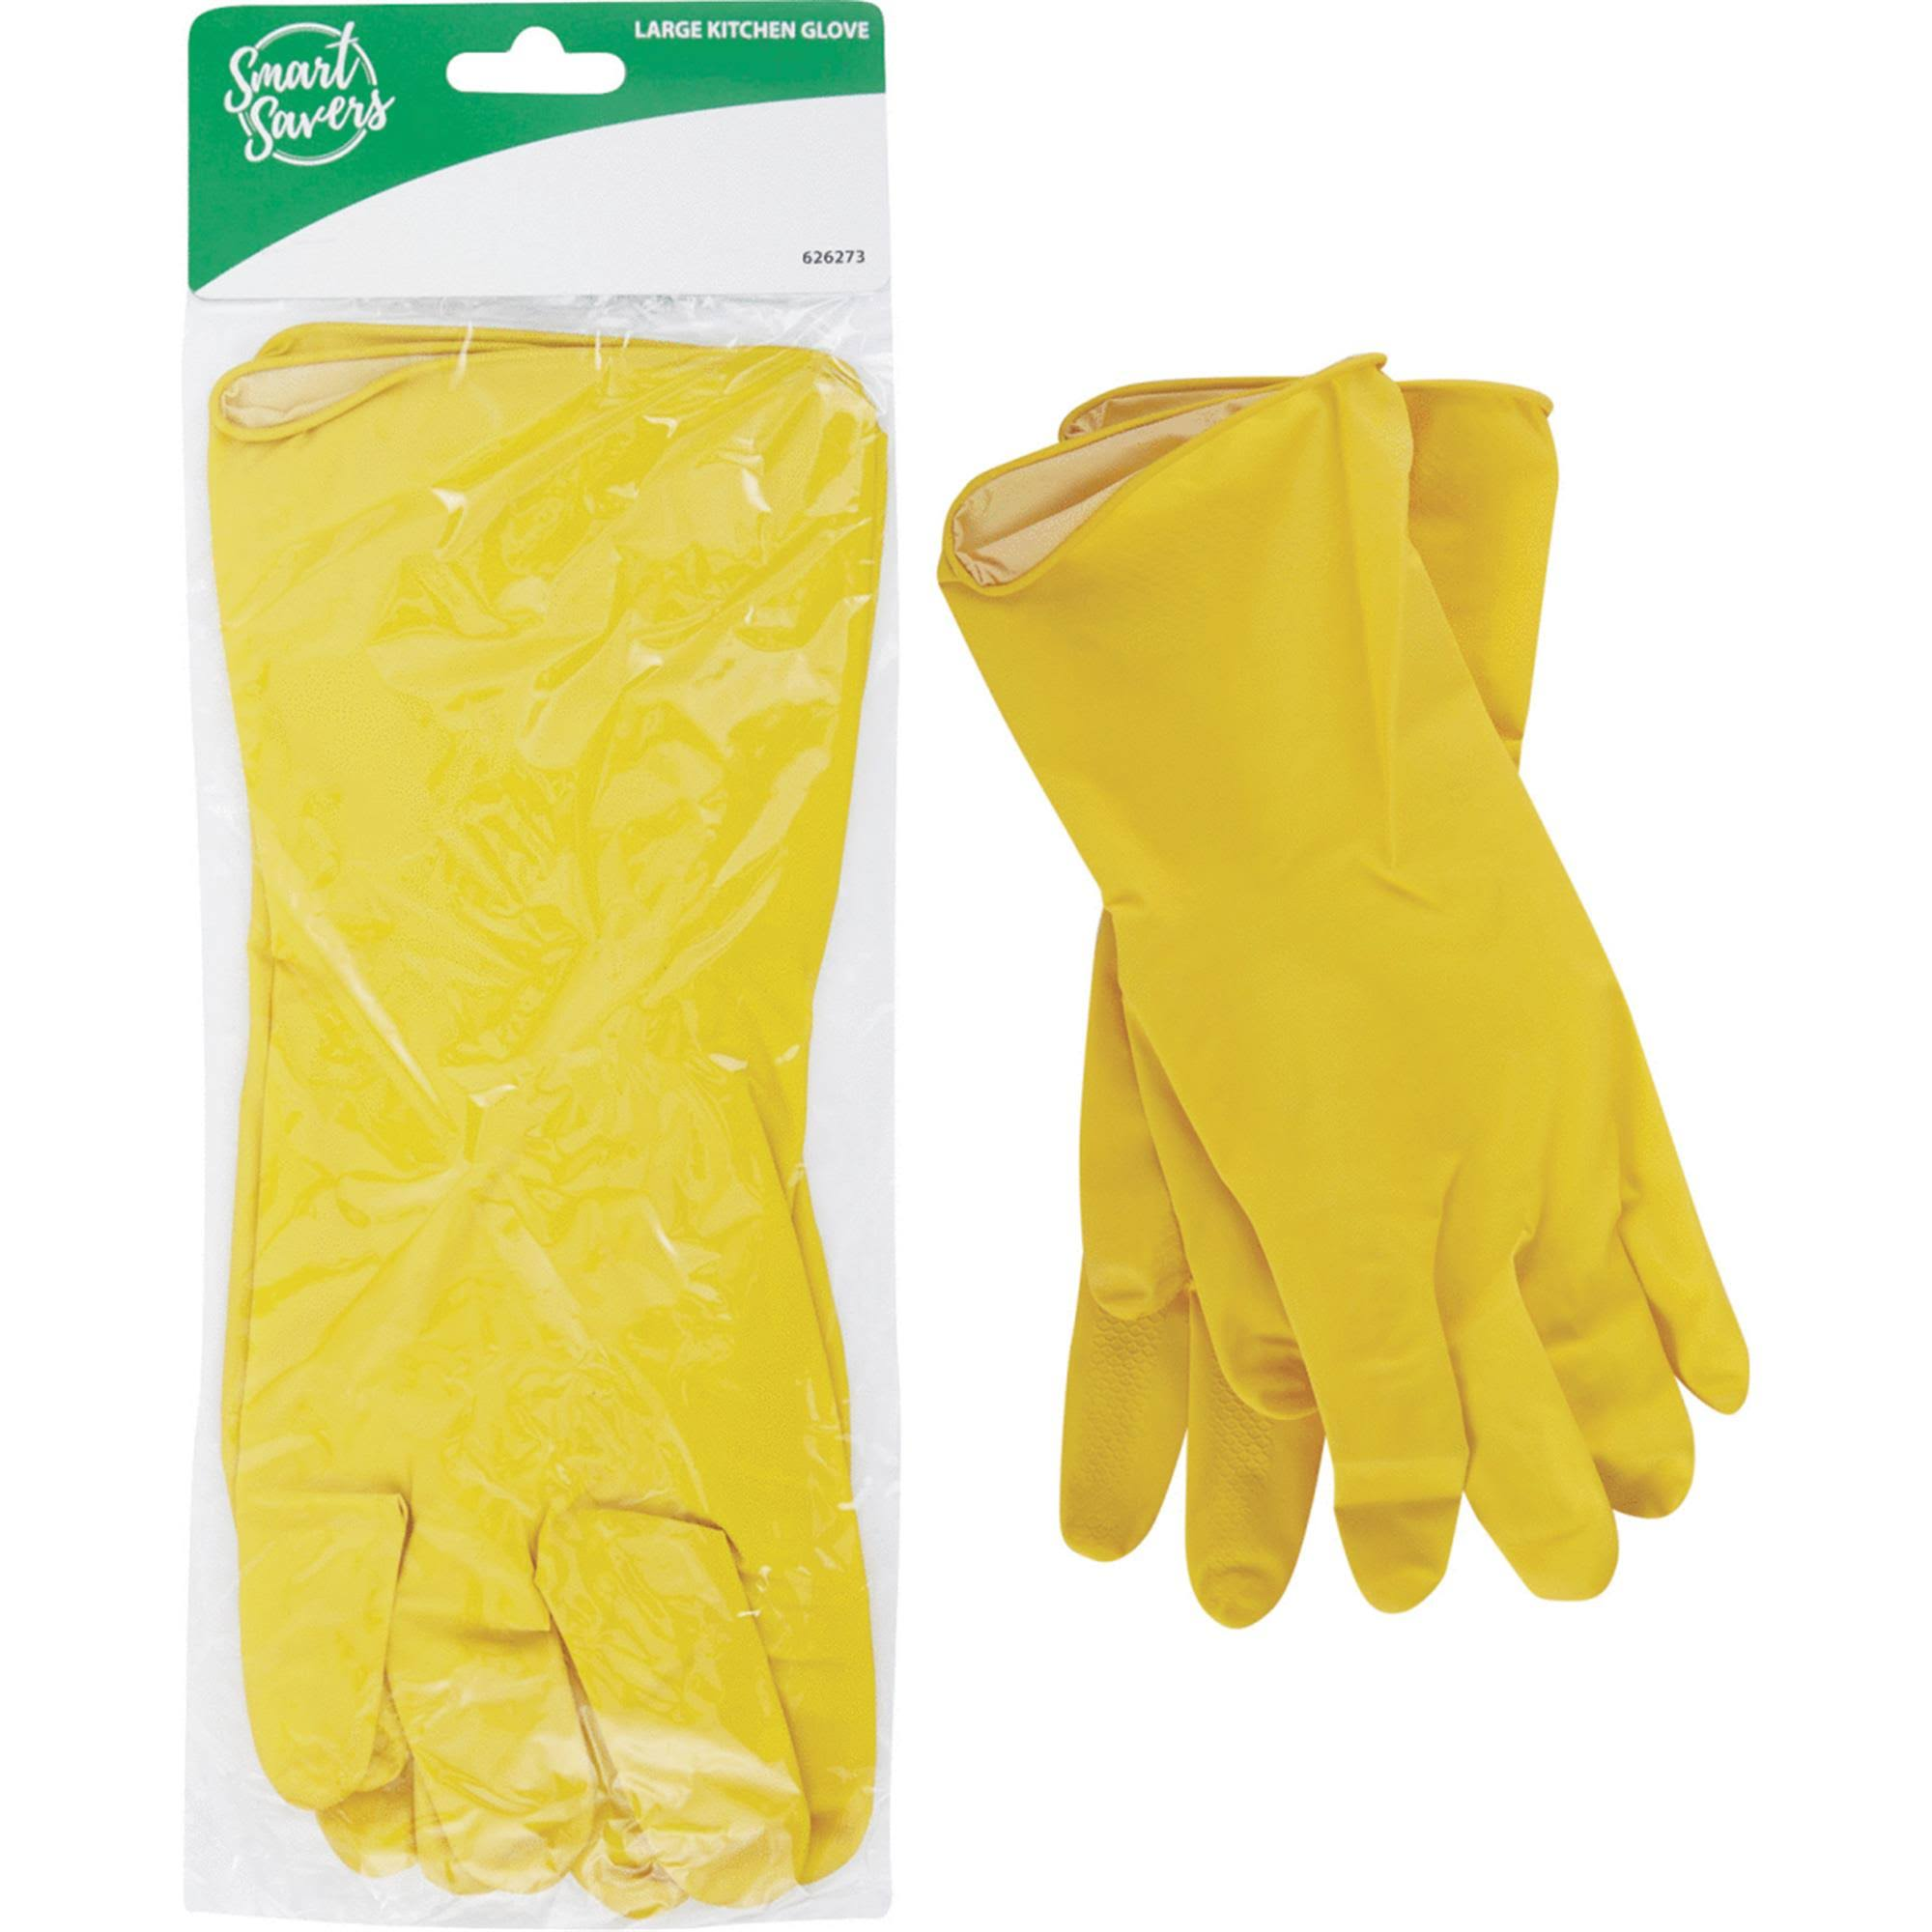 Do It Best Kitchen Glove - Large